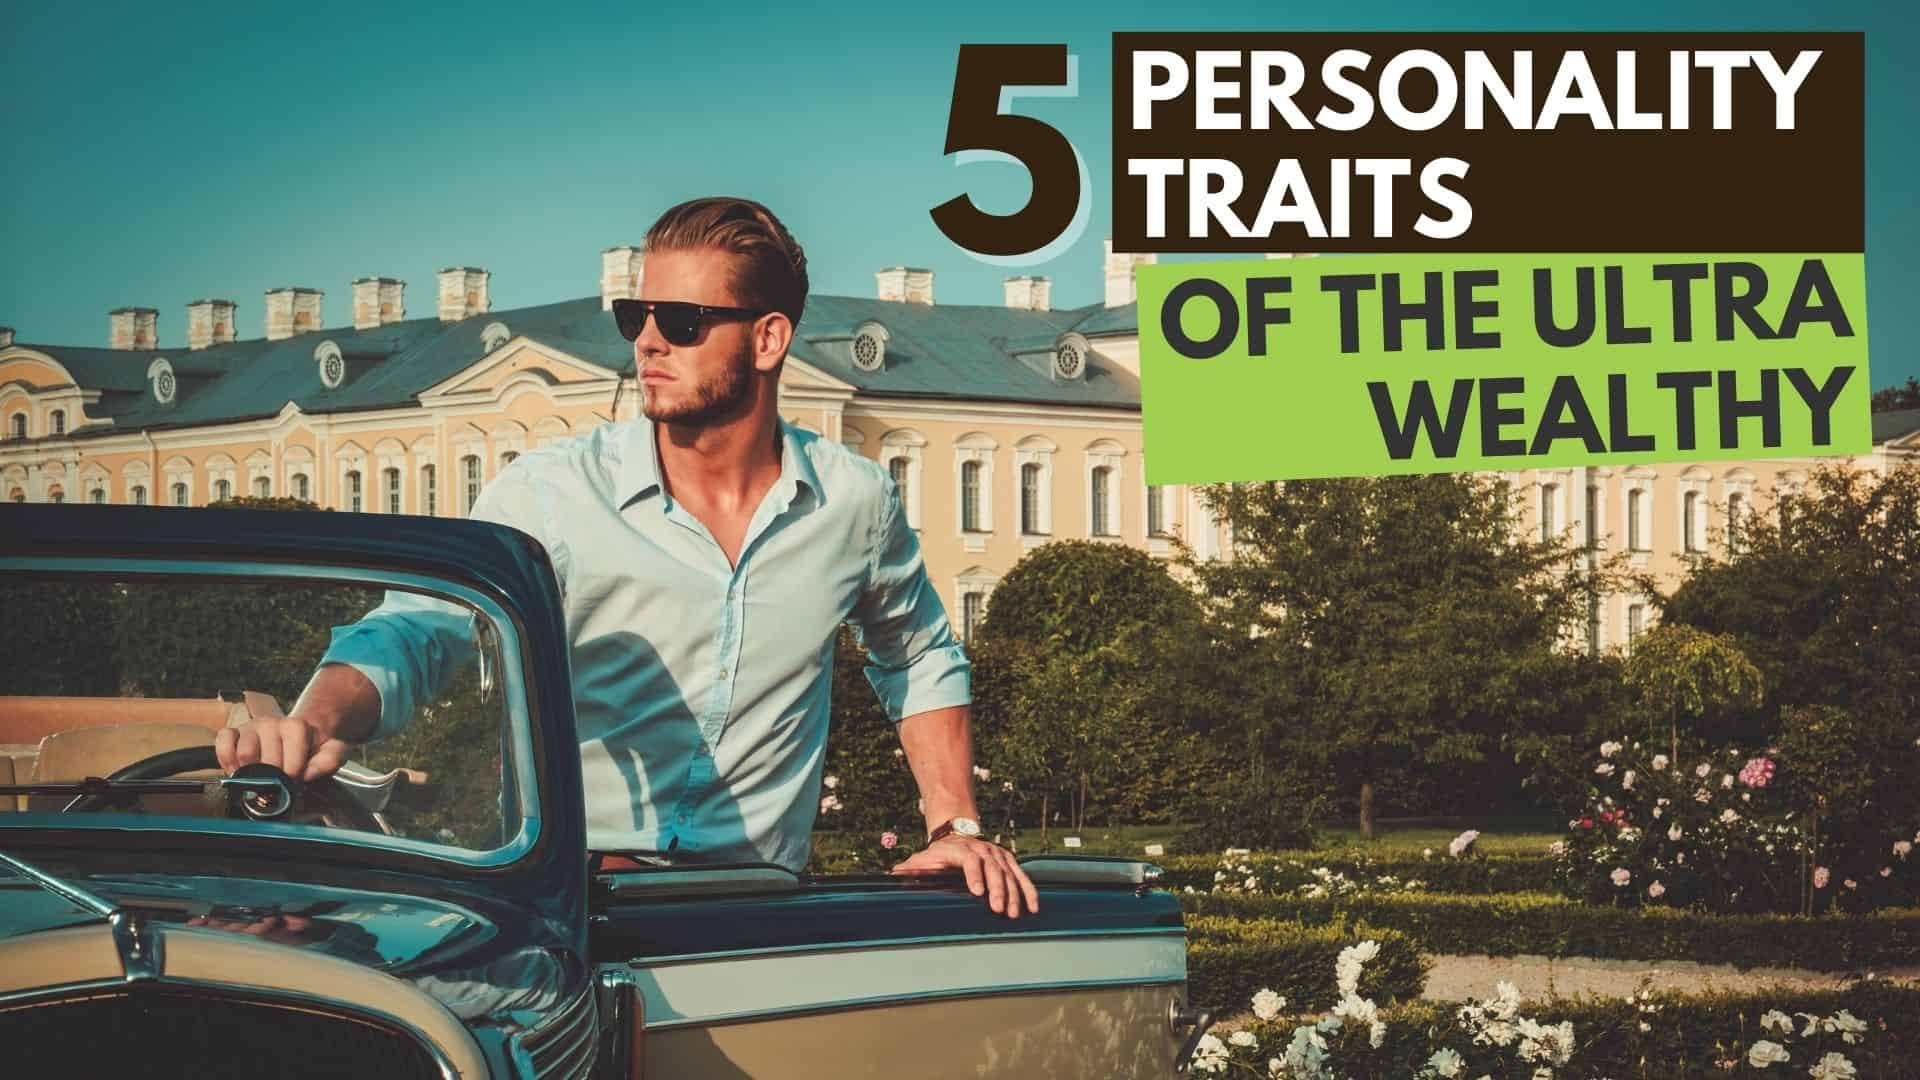 5 Personality Traits of the Ultra Wealthy